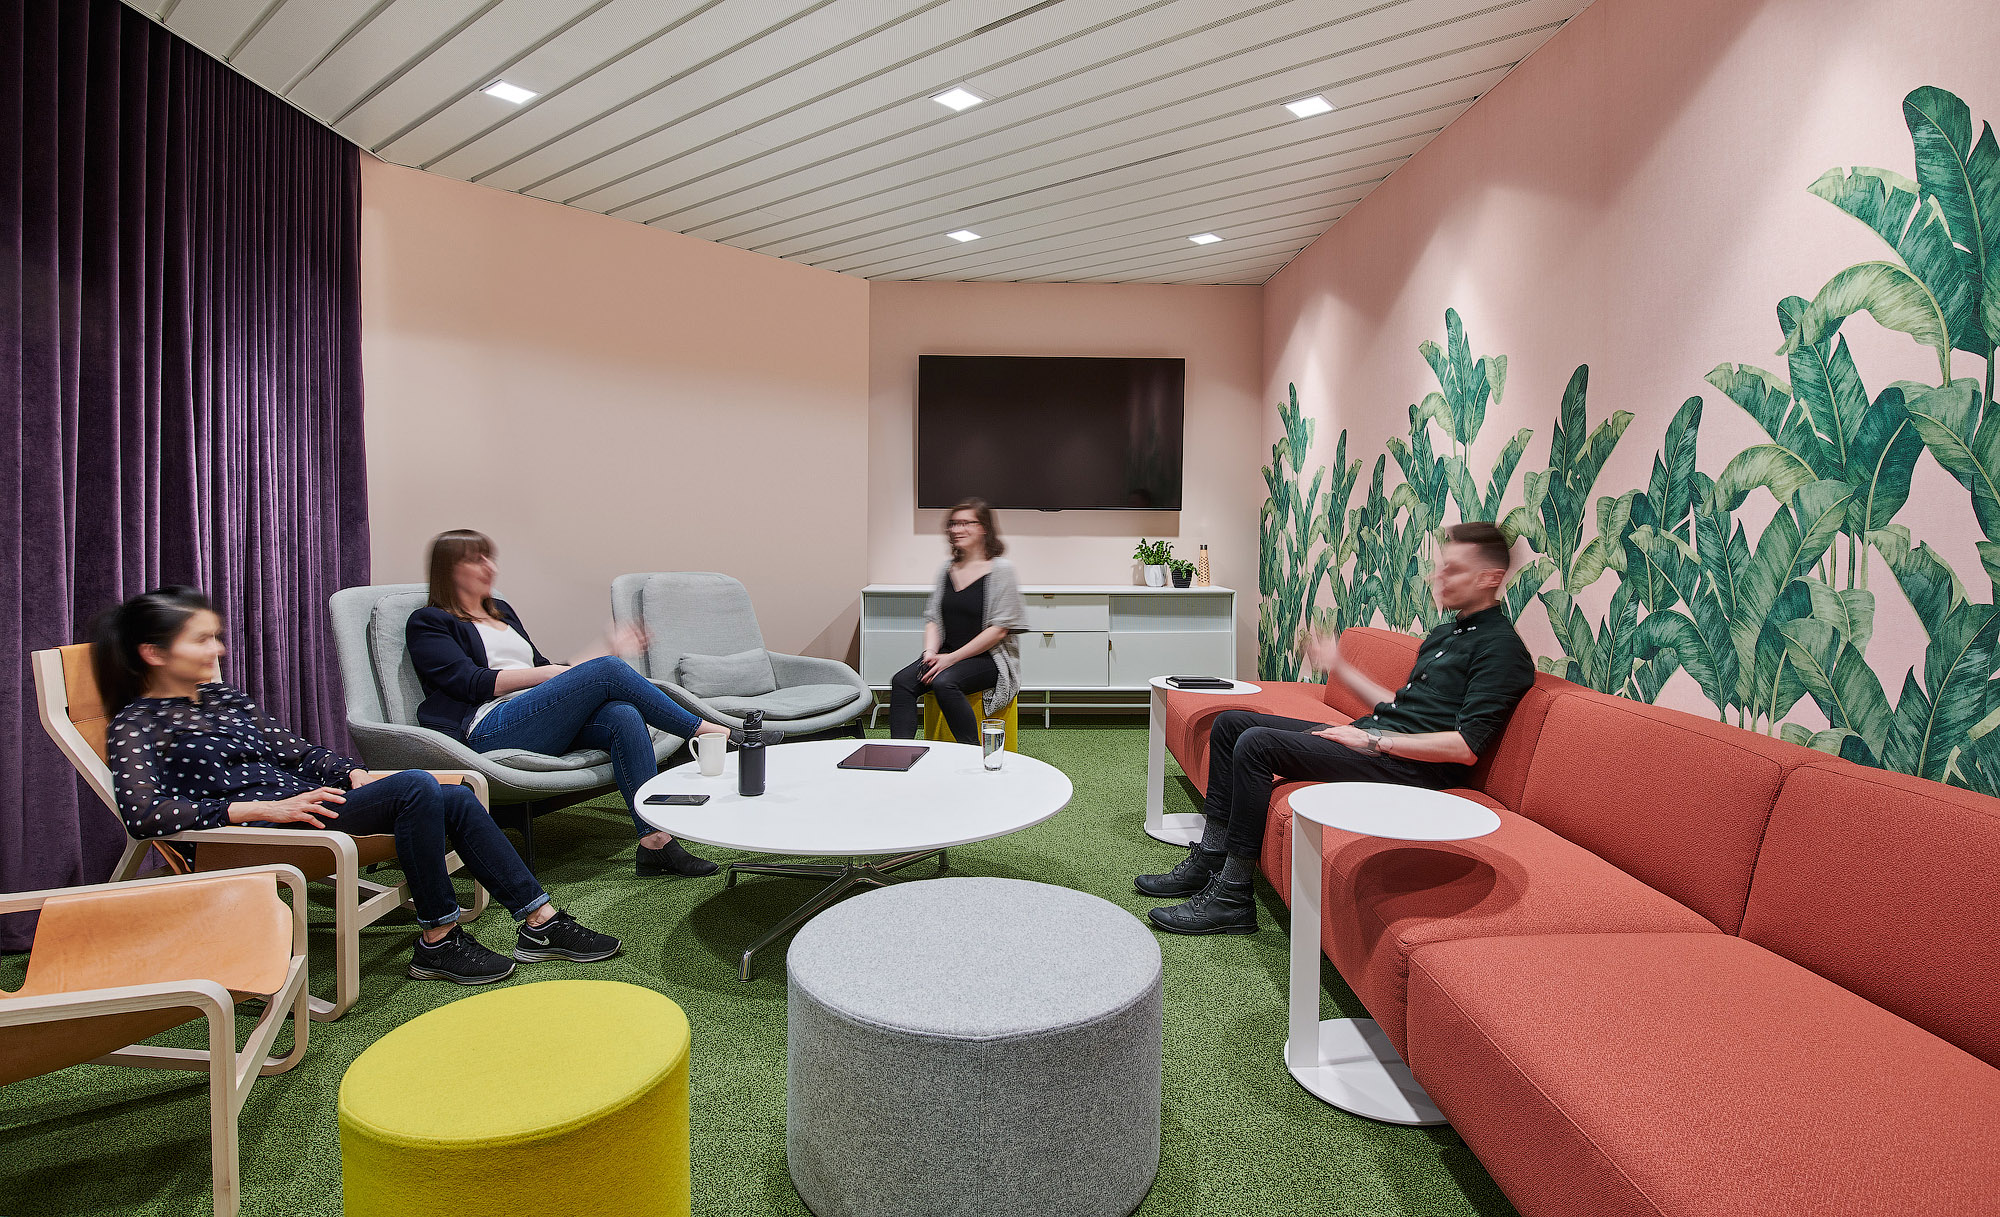 Mediabrands informal meeting room with pink walls, palm leaf graphics, and colourful residential-style furniture